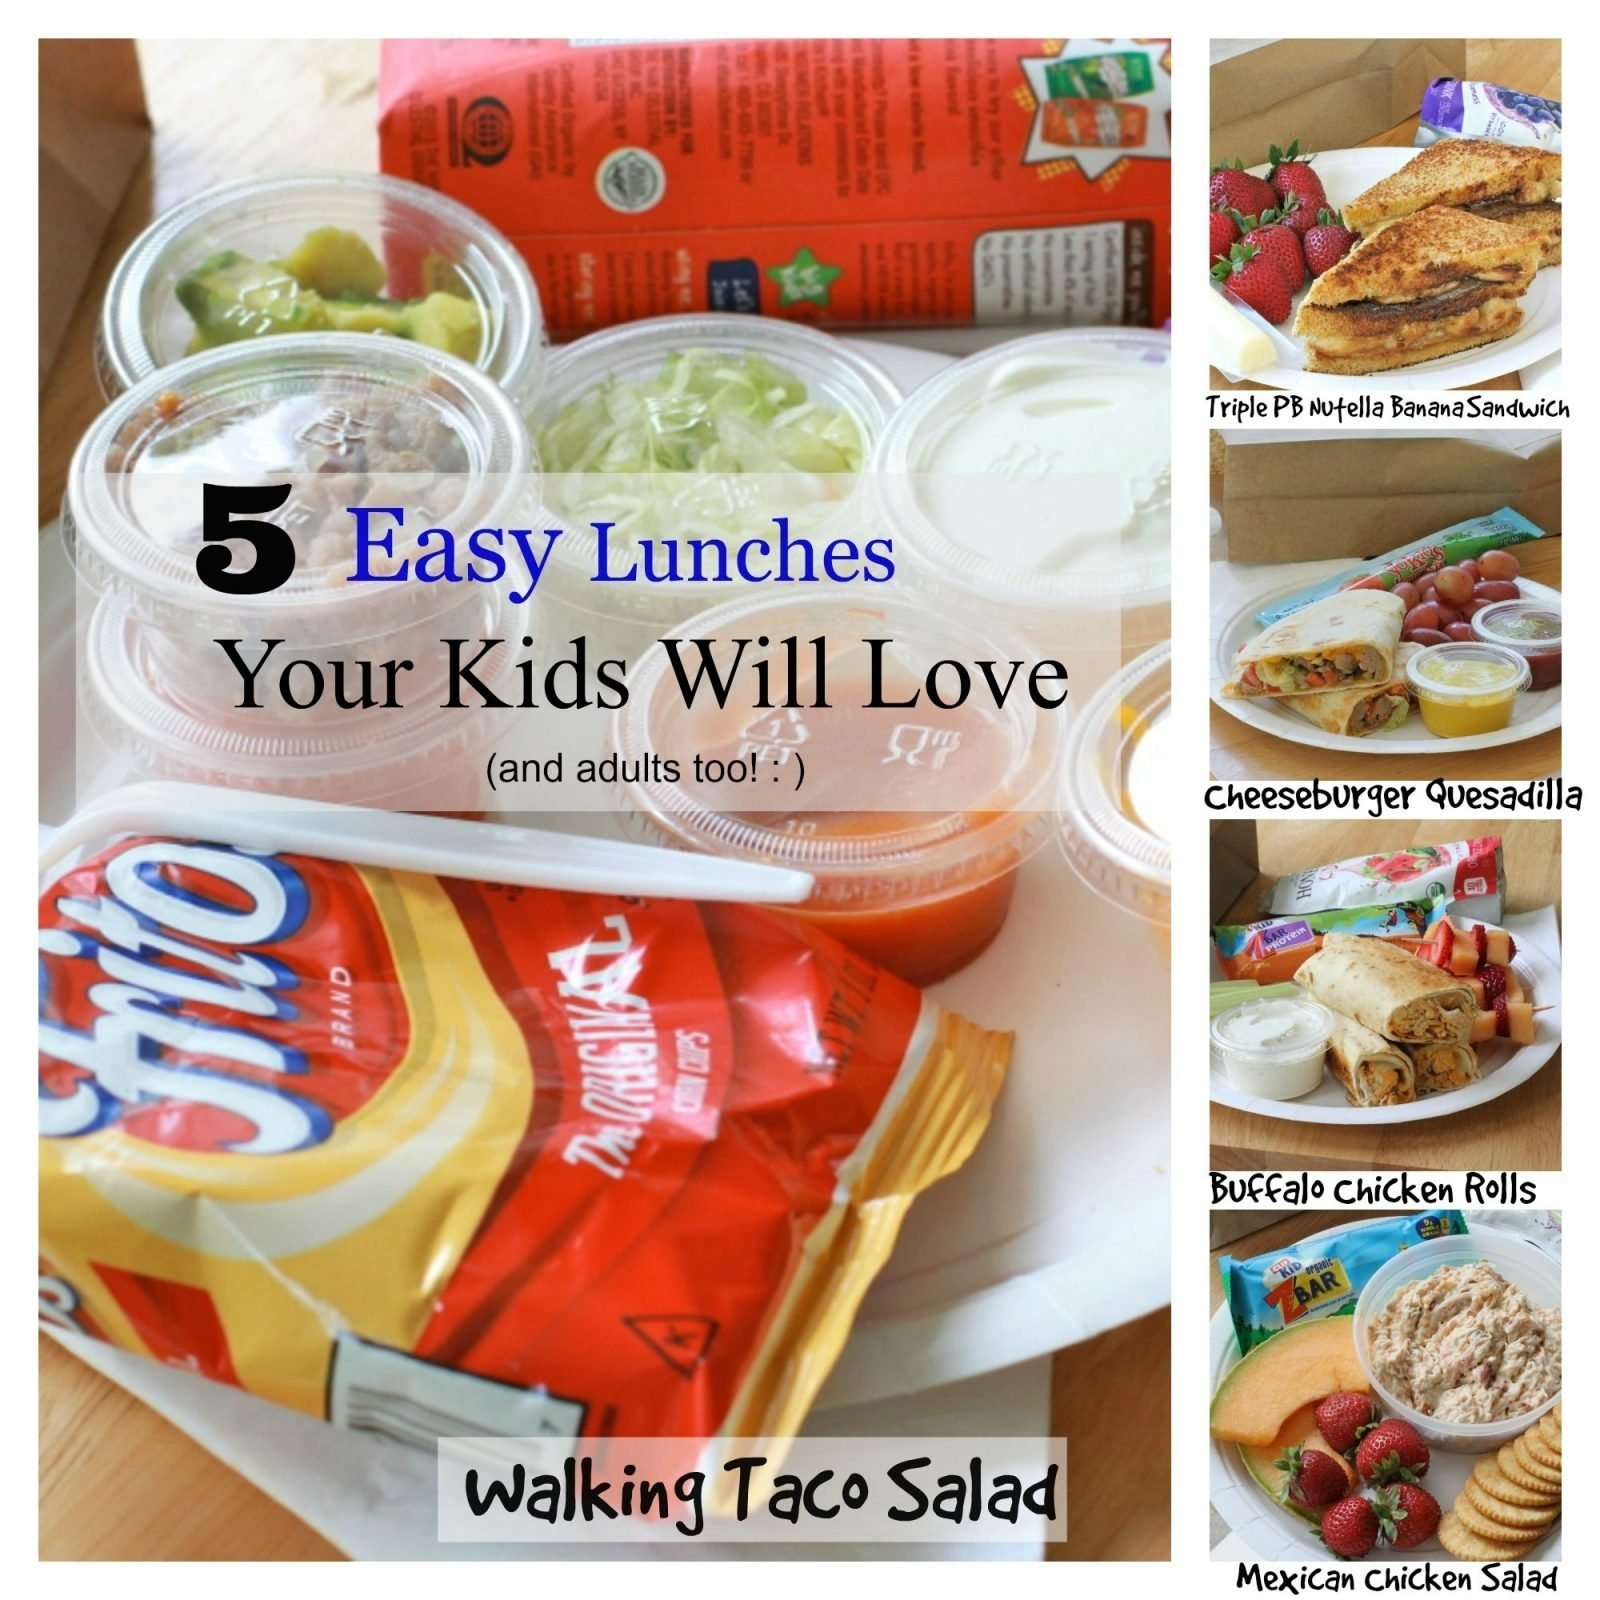 10 Nice Ideas For Kids Lunches For School easy school lunch idea recipes divas can cook 2 2021